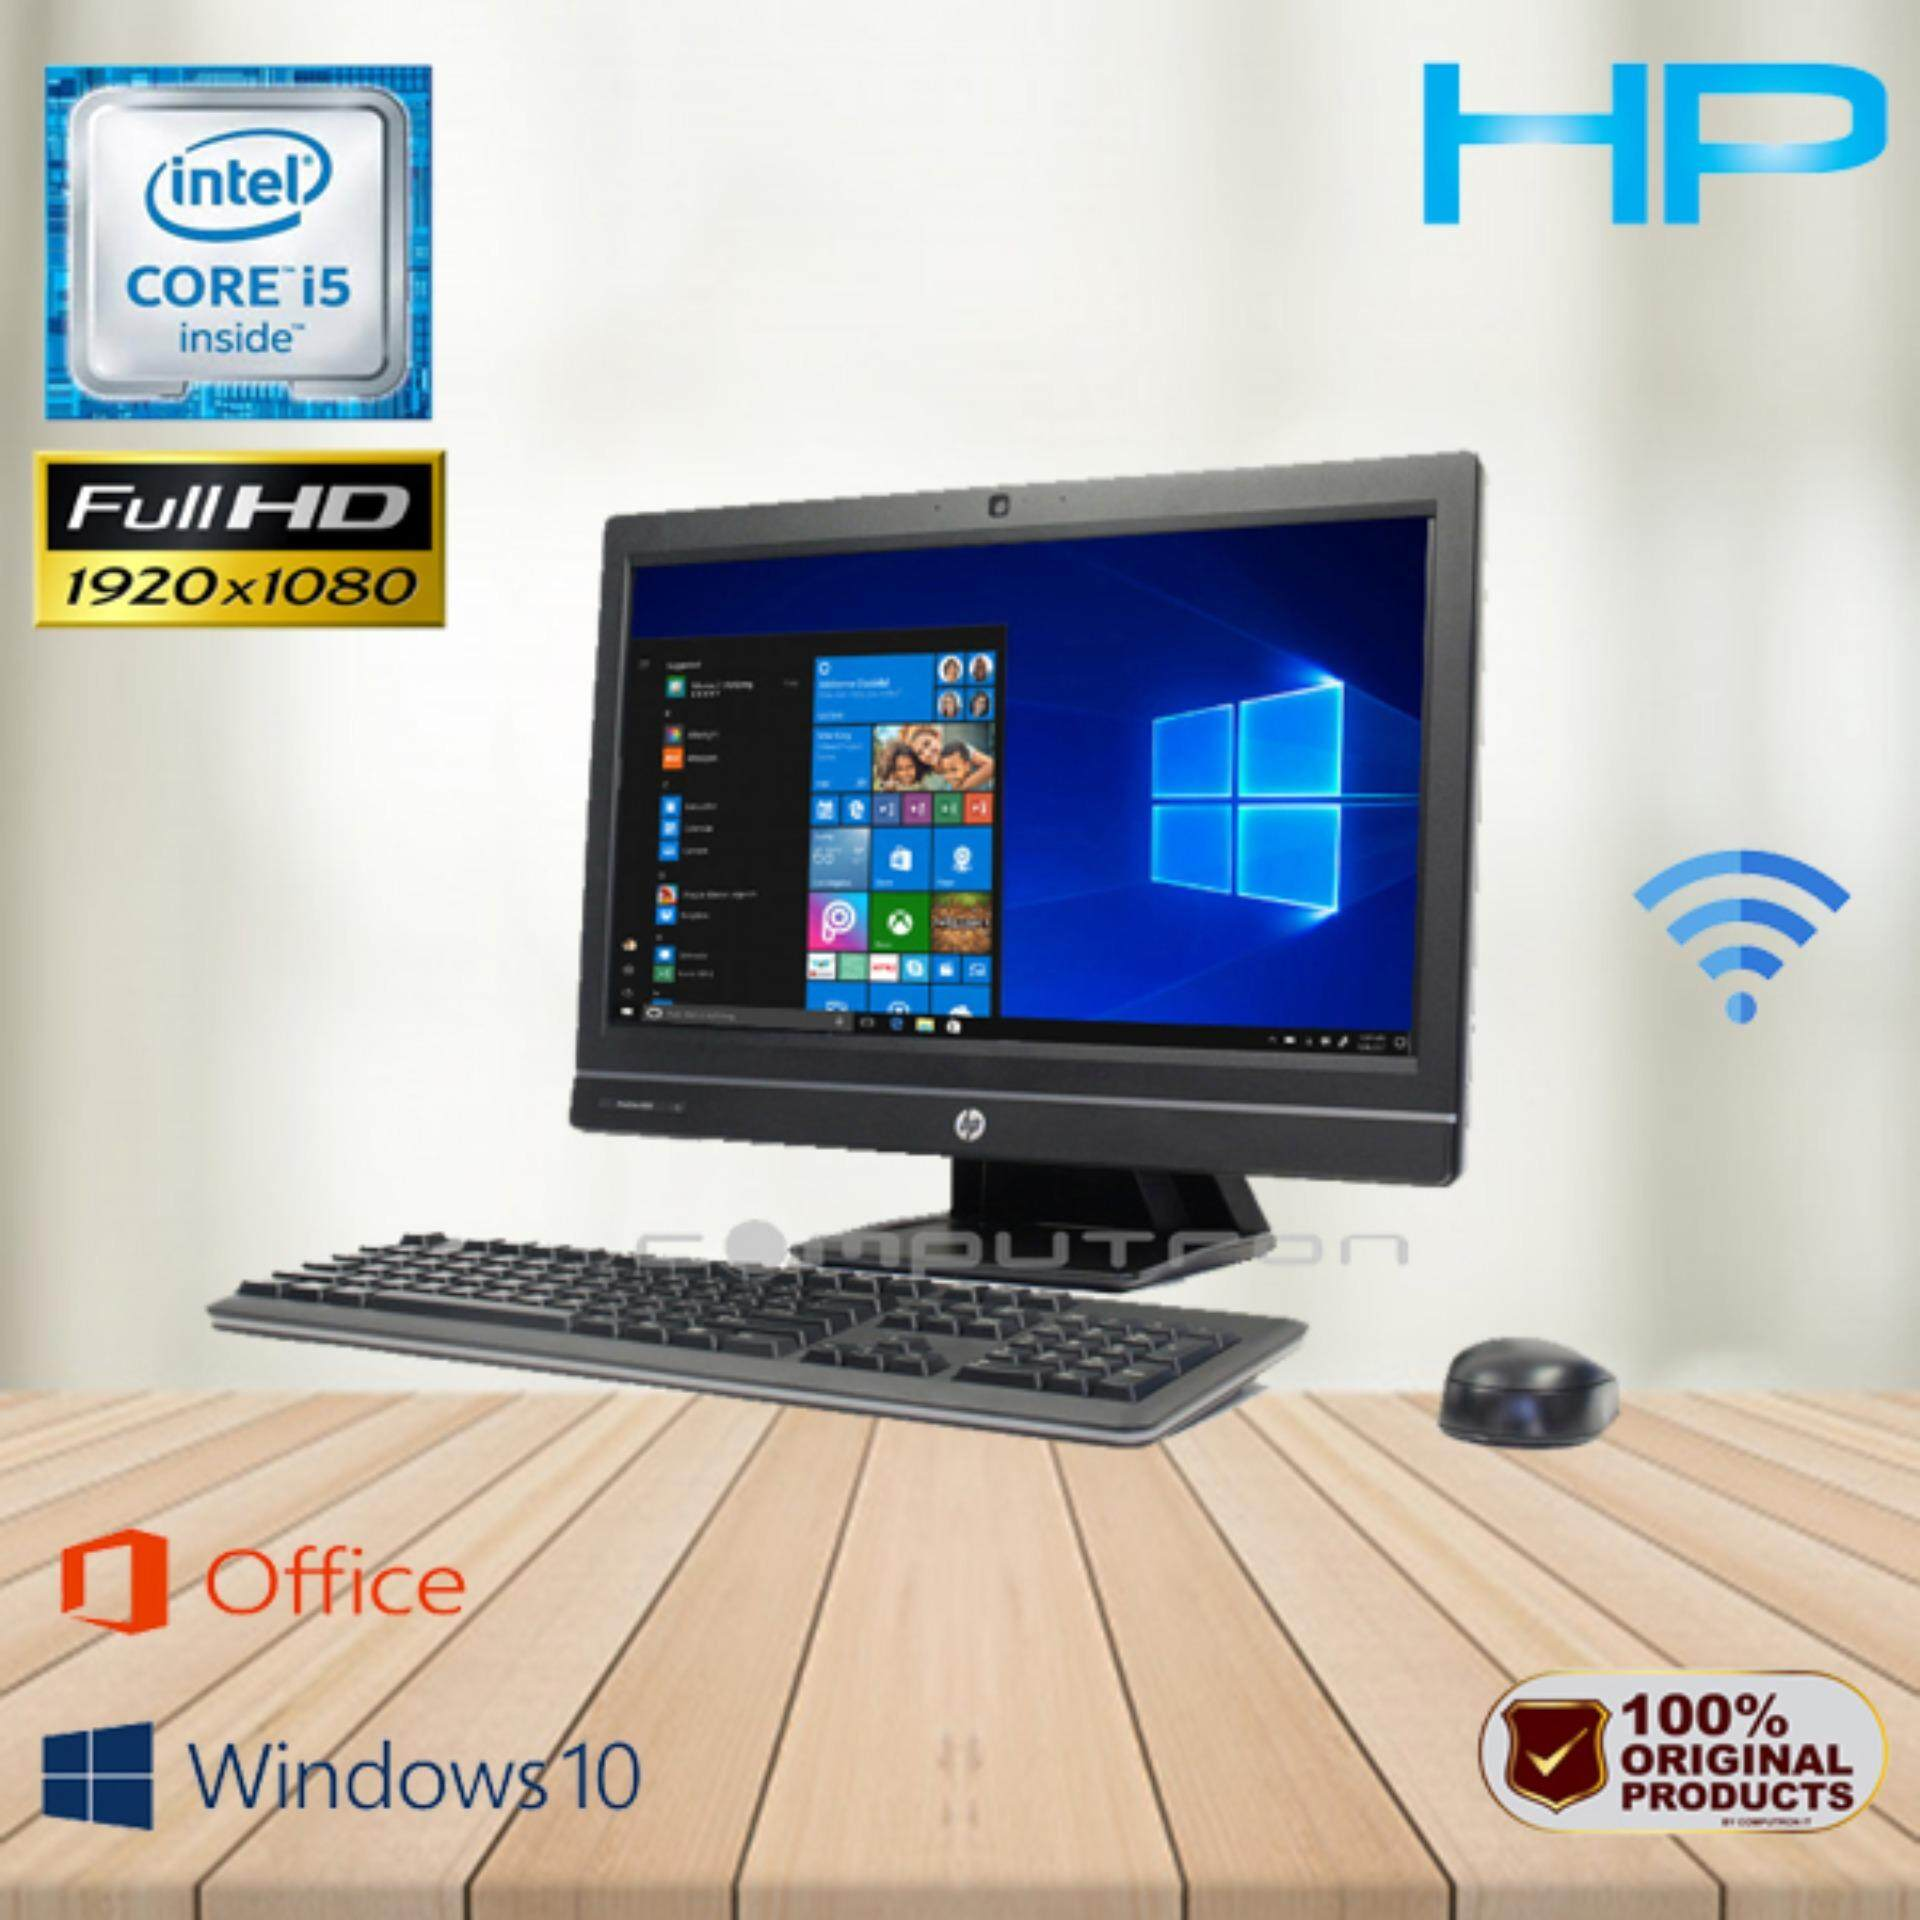 HP PRO ONE 600 G1 ALL-IN-ONE PC DESKTOP 22